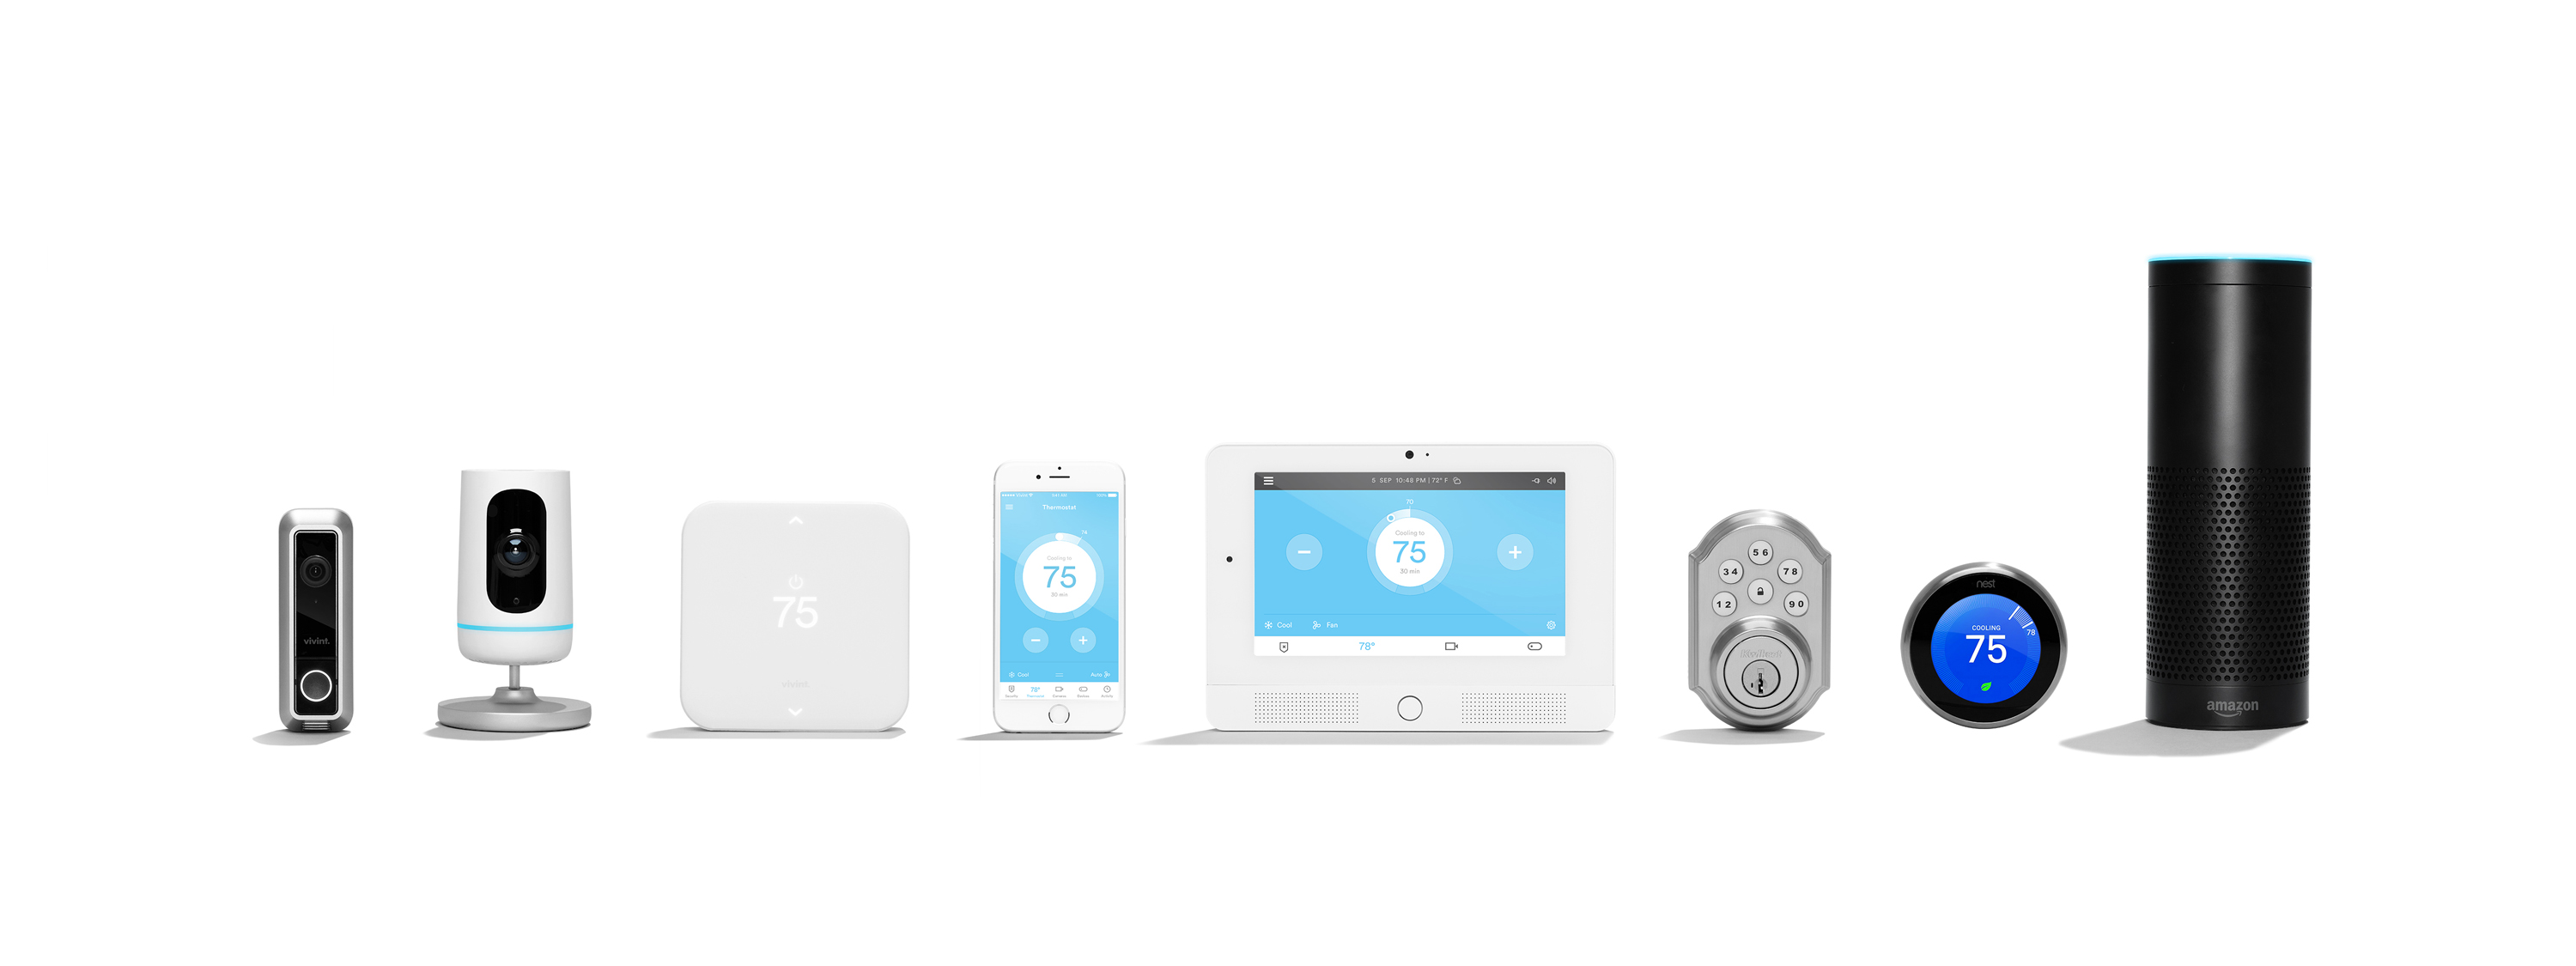 Vivint Alarm System >> Amazon Echo now works with Vivint home security and automation